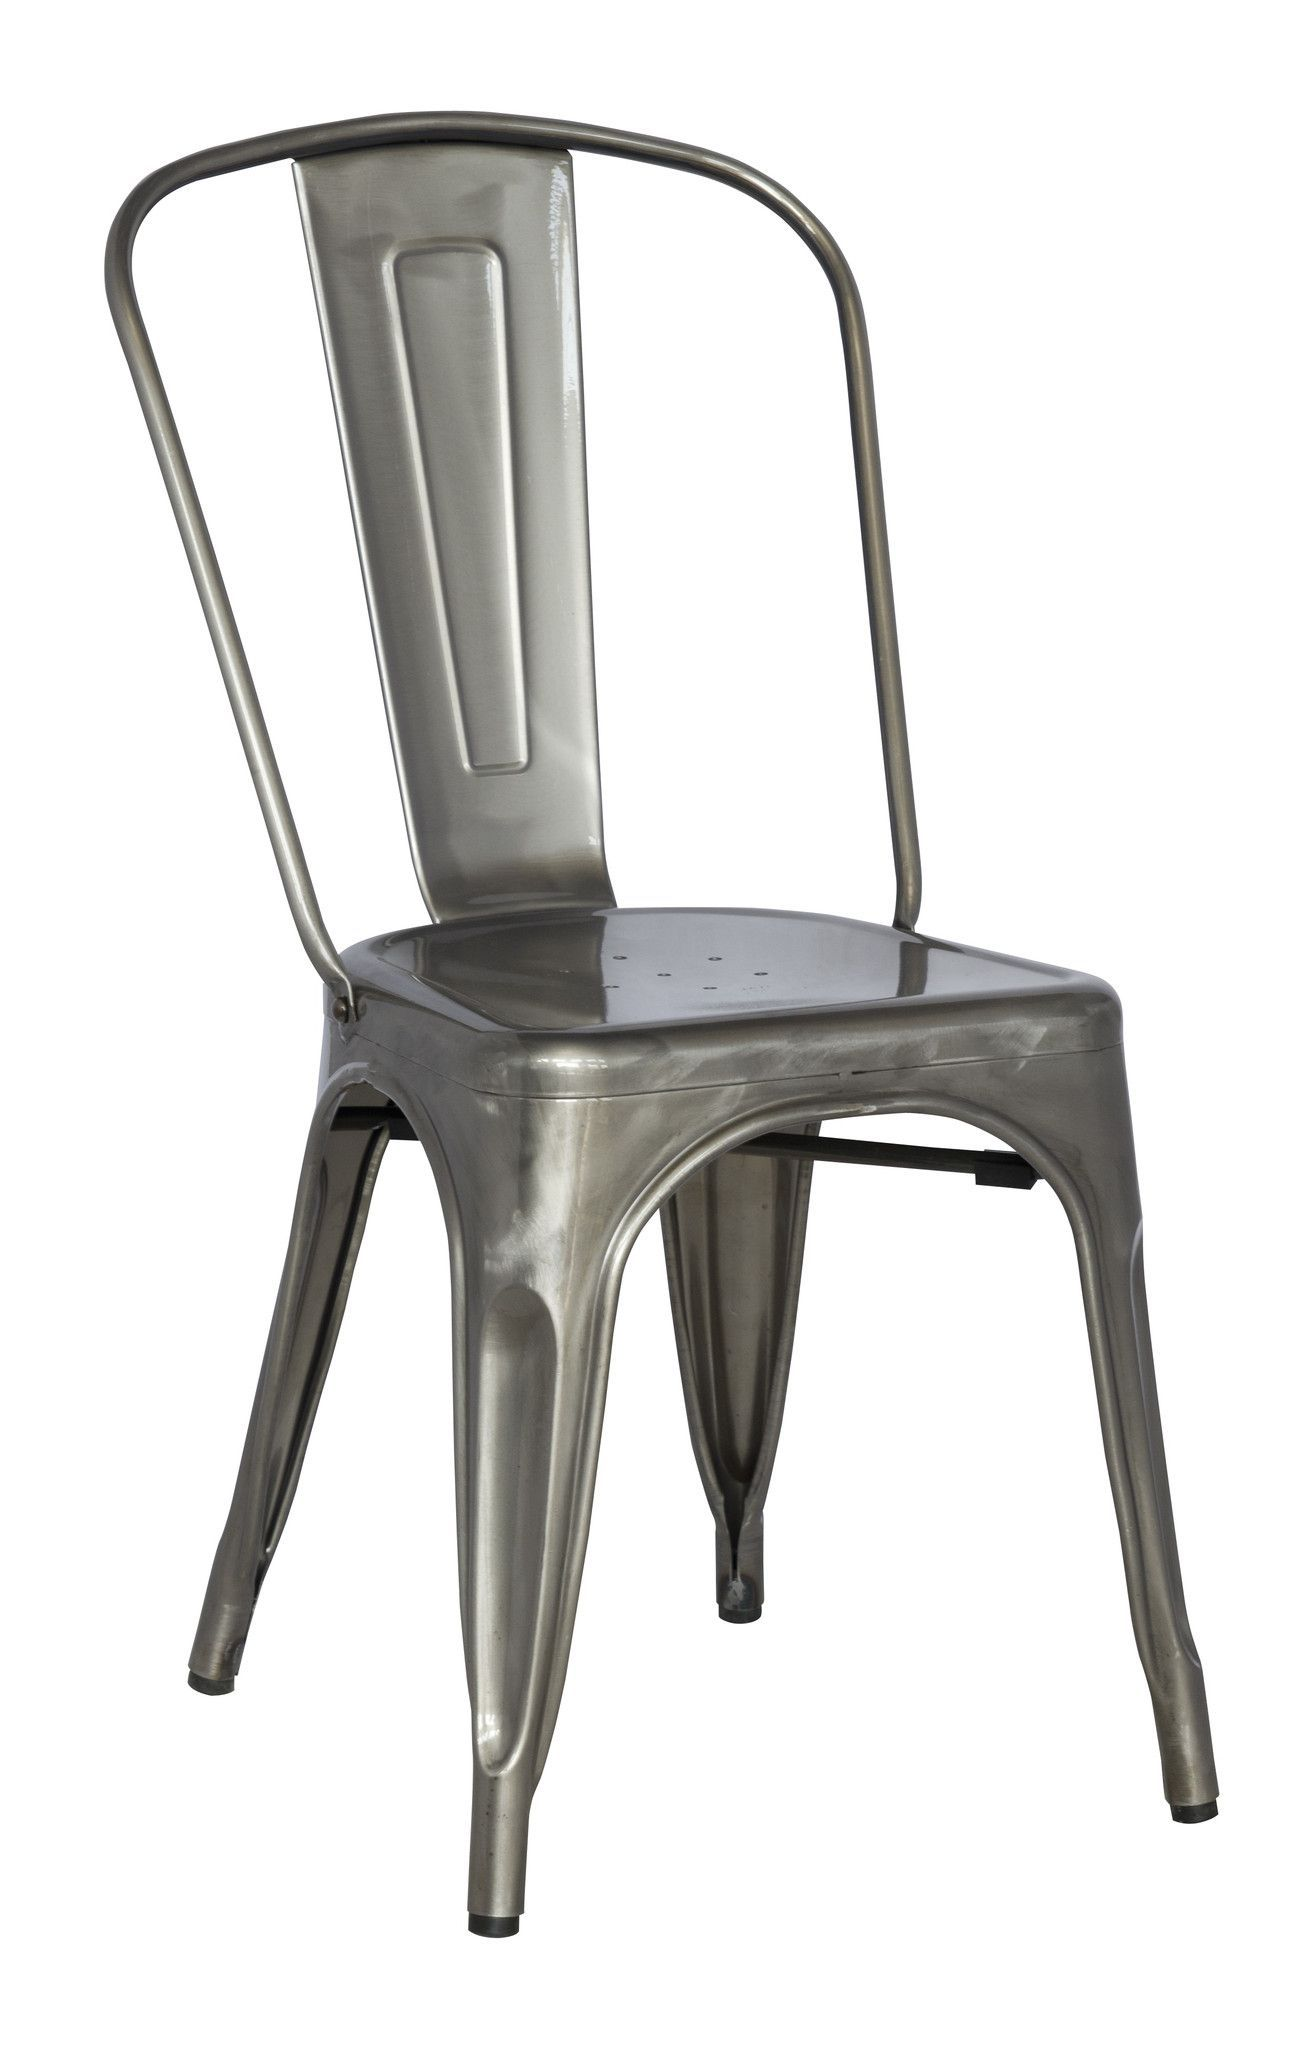 These Super Trendy Galvanized Steel Chairs Are Everything You Need